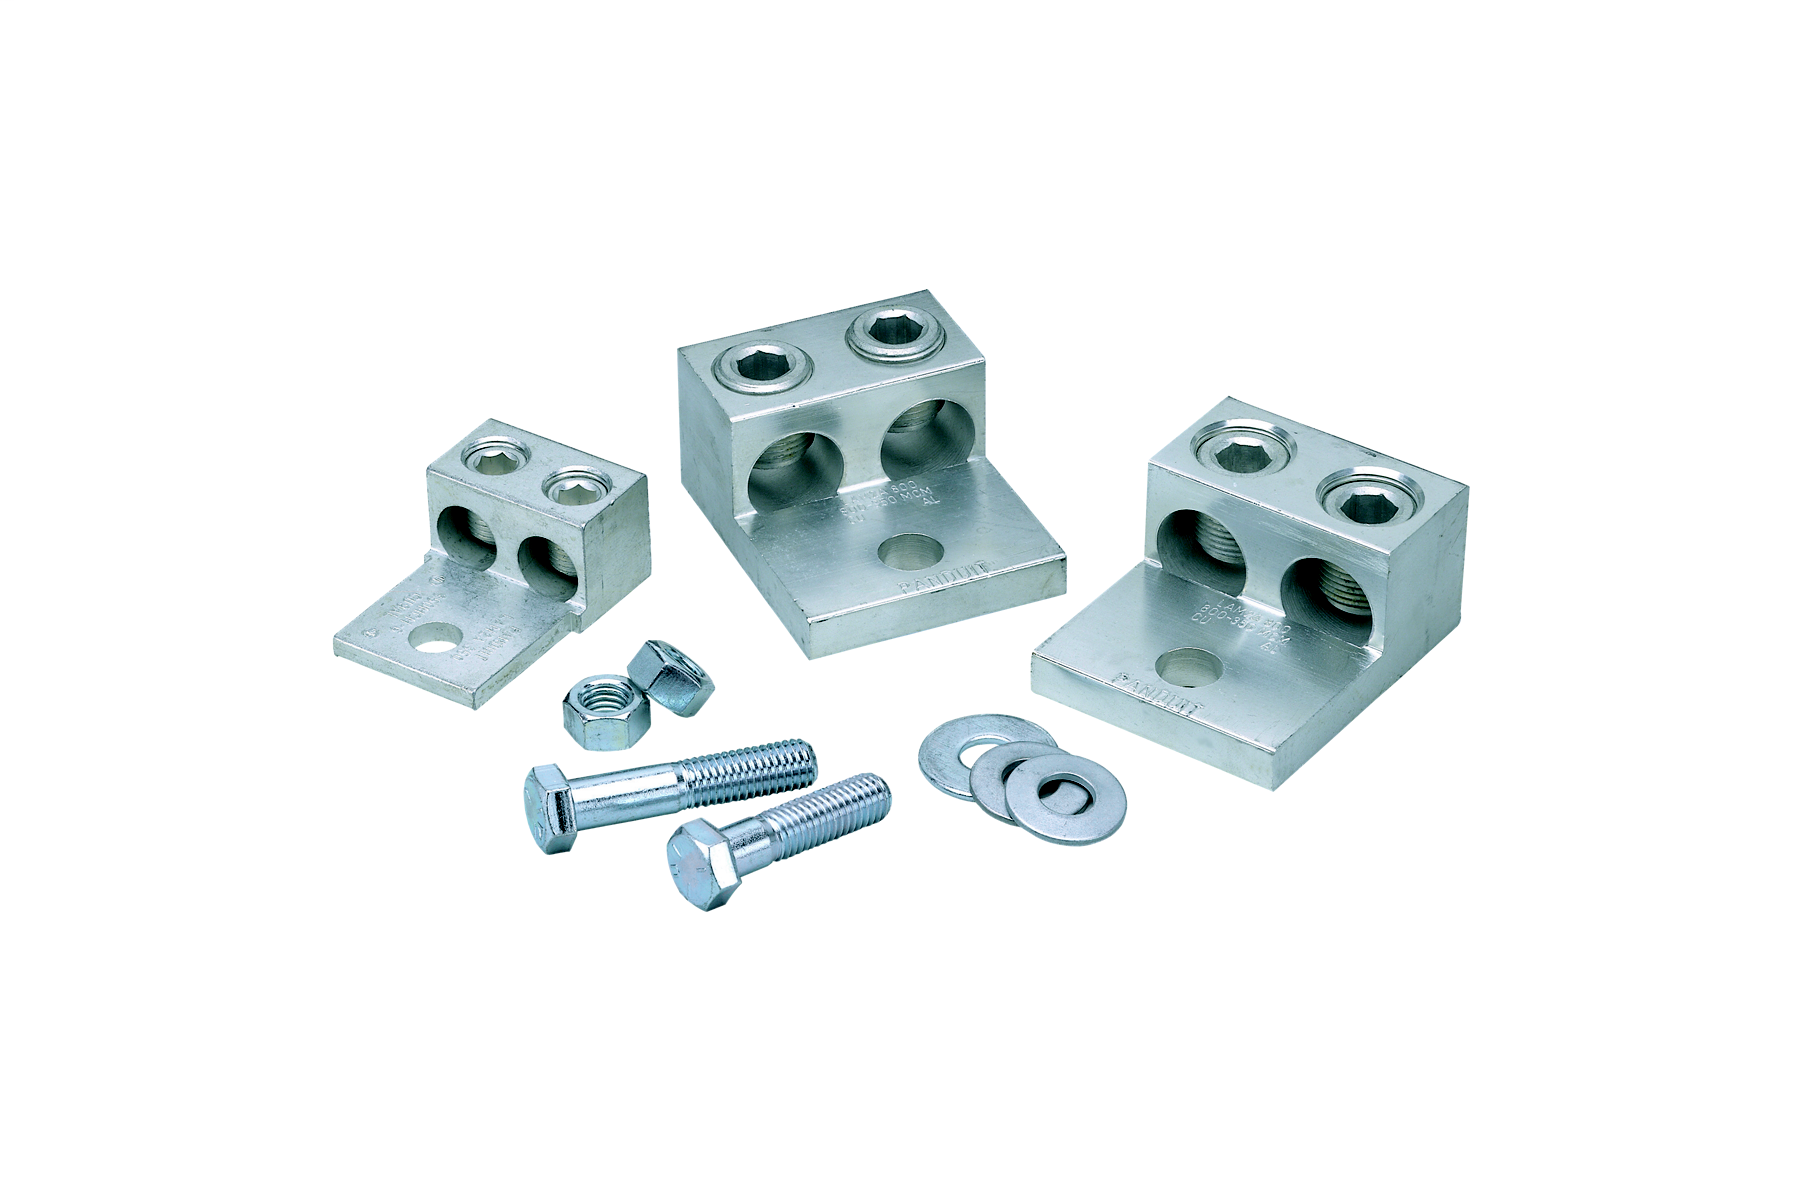 Mayer-Aluminum Mechanical Transformer Lug Kit, #14 - #2 AWG and #6 AWG - 250 kcmil Conductors-1